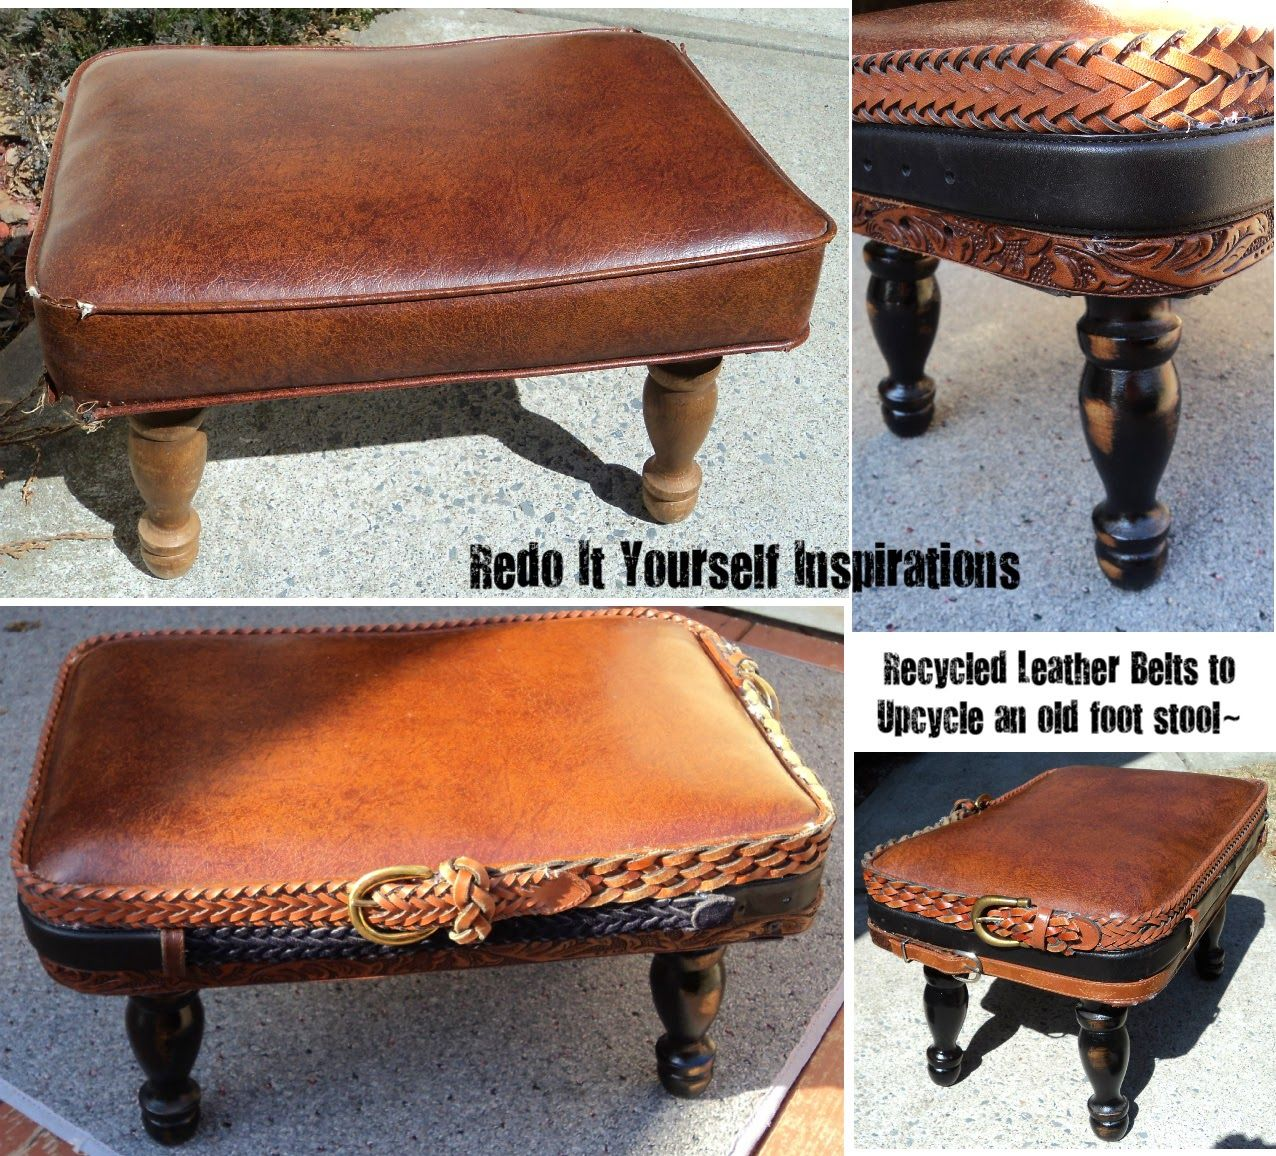 Enjoyable Redo It Yourself Inspirations Upcycled Foot Stool Machost Co Dining Chair Design Ideas Machostcouk